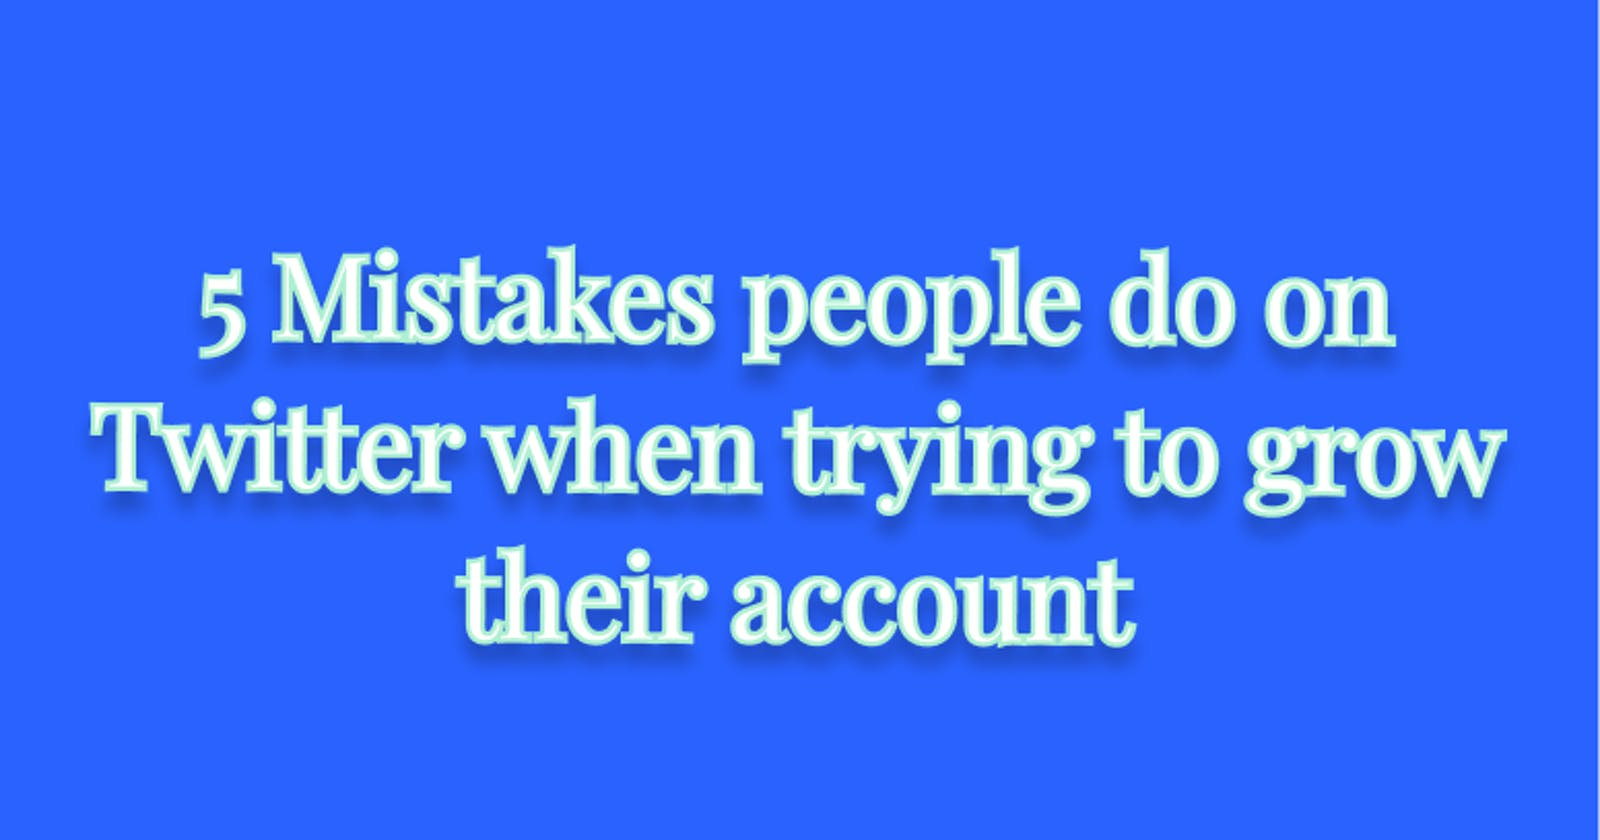 5 Mistakes people do on Twitter when trying to grow their account